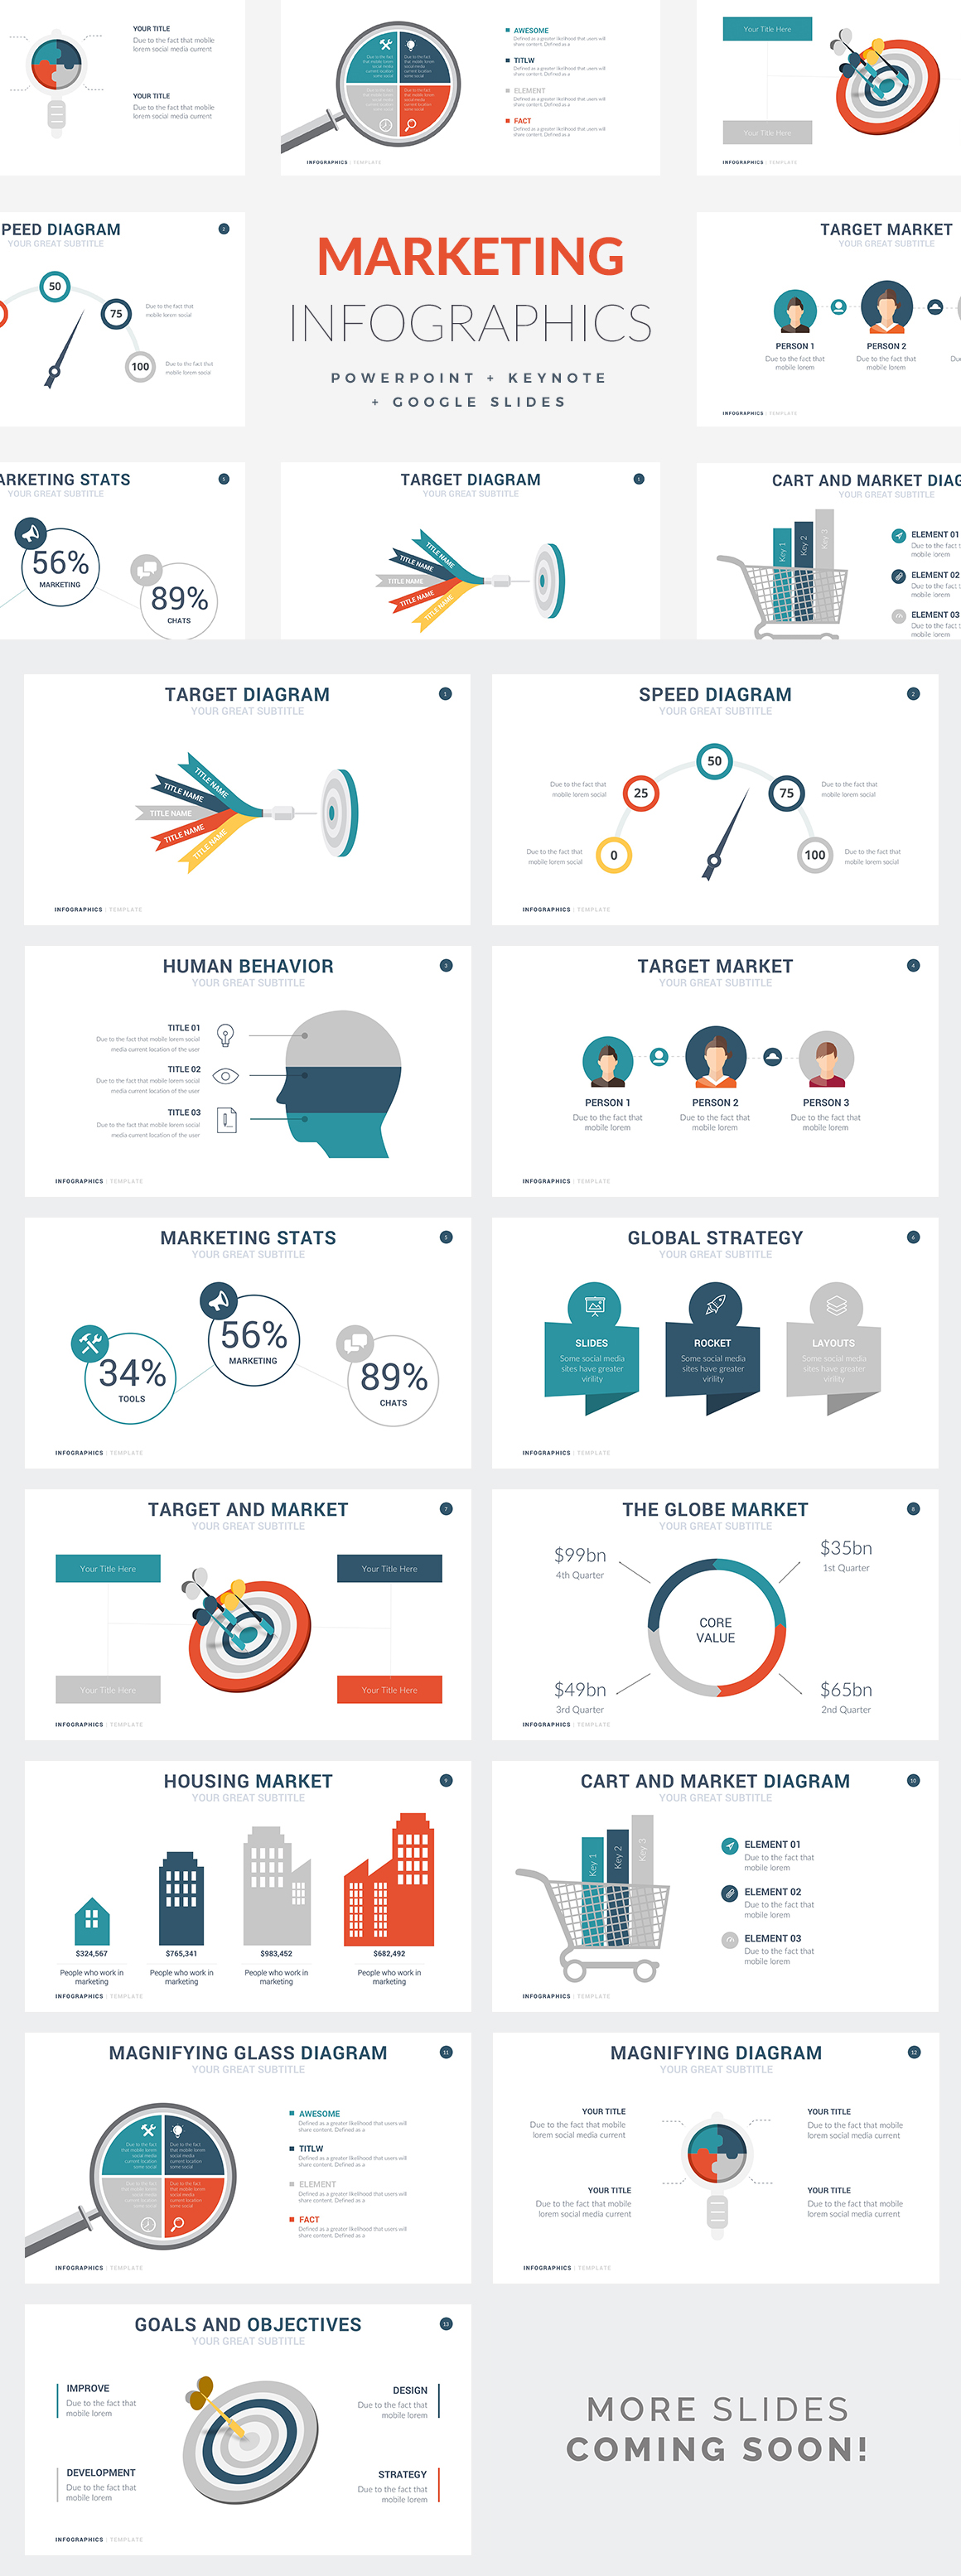 Marketing Infographic Templates - PowerPoint Templates - Keynote Themes - Google Slides